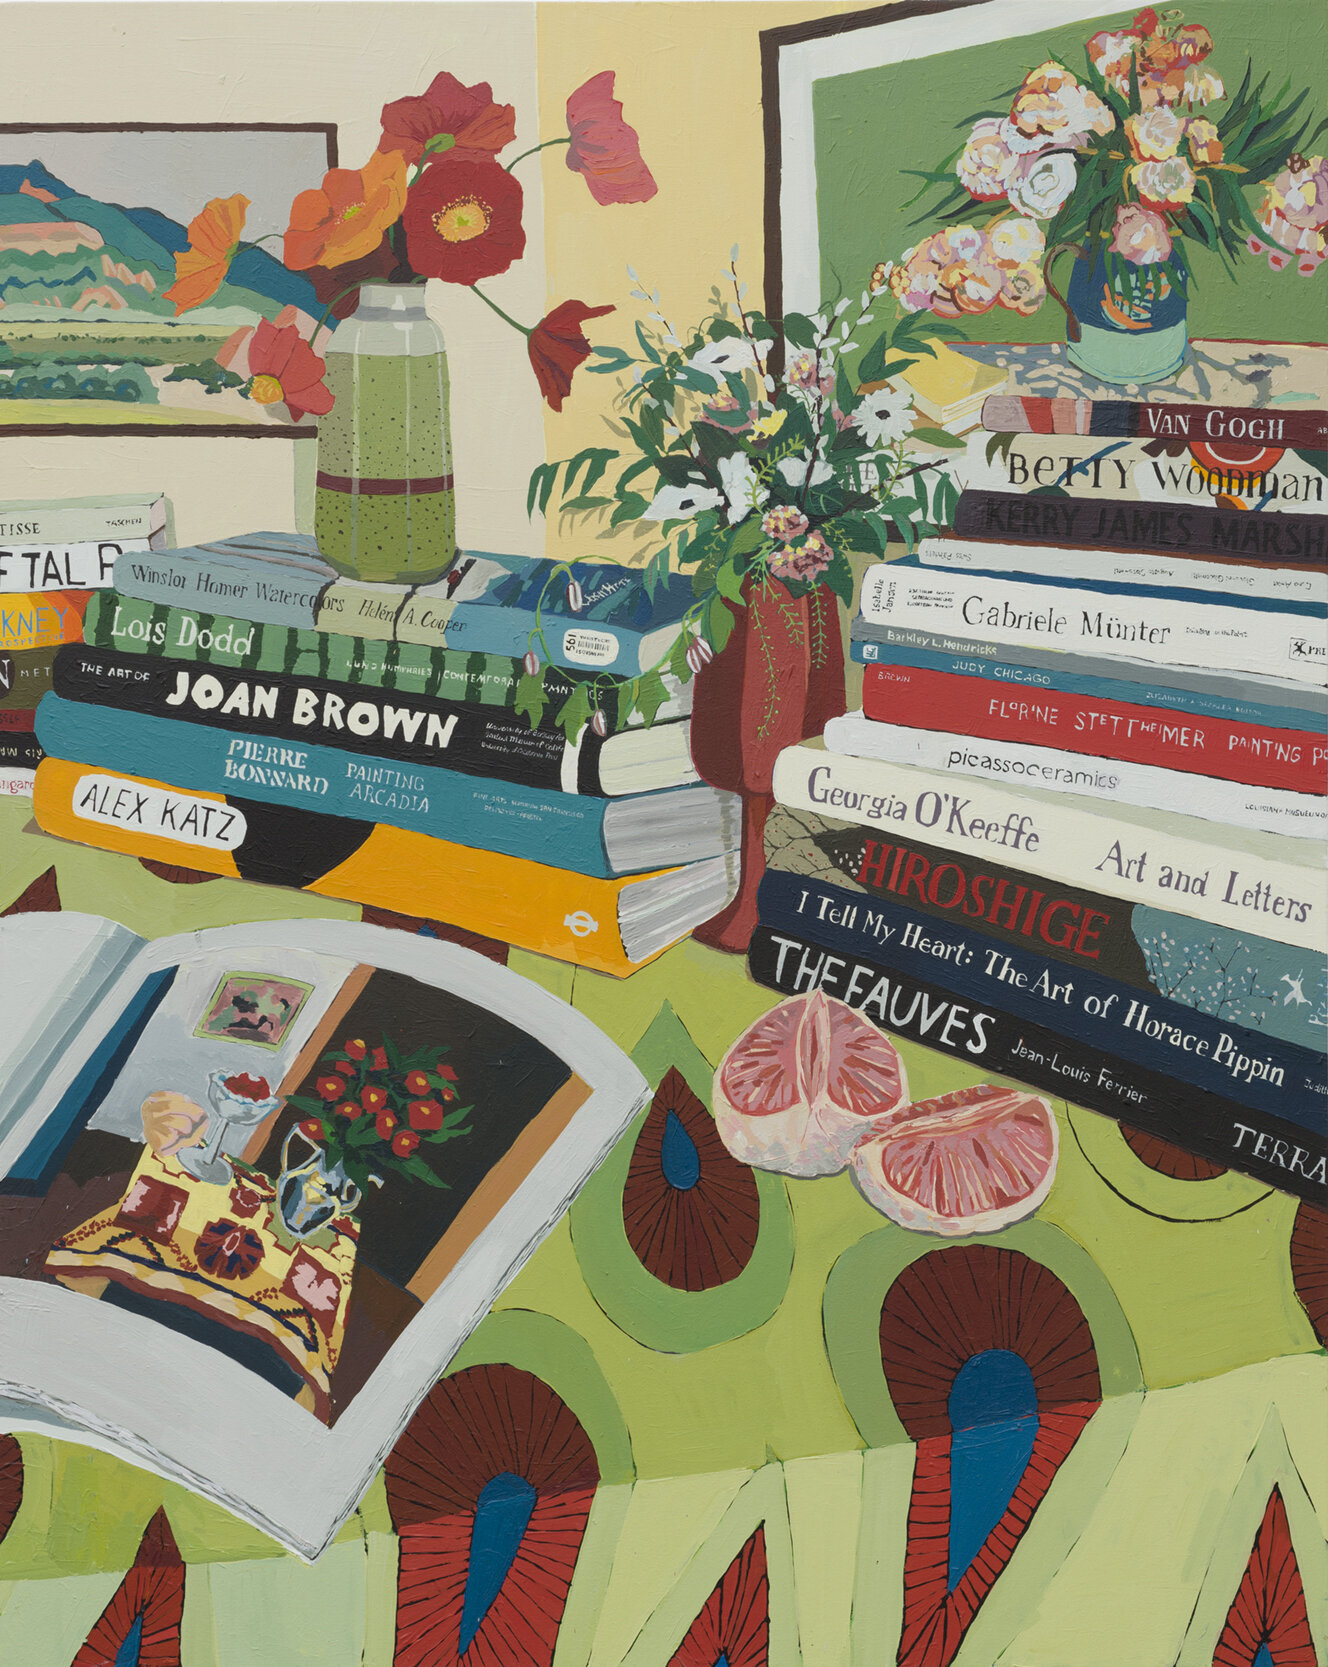 HilaryPecis_Tables,+Flowers,+and+Books_2019_